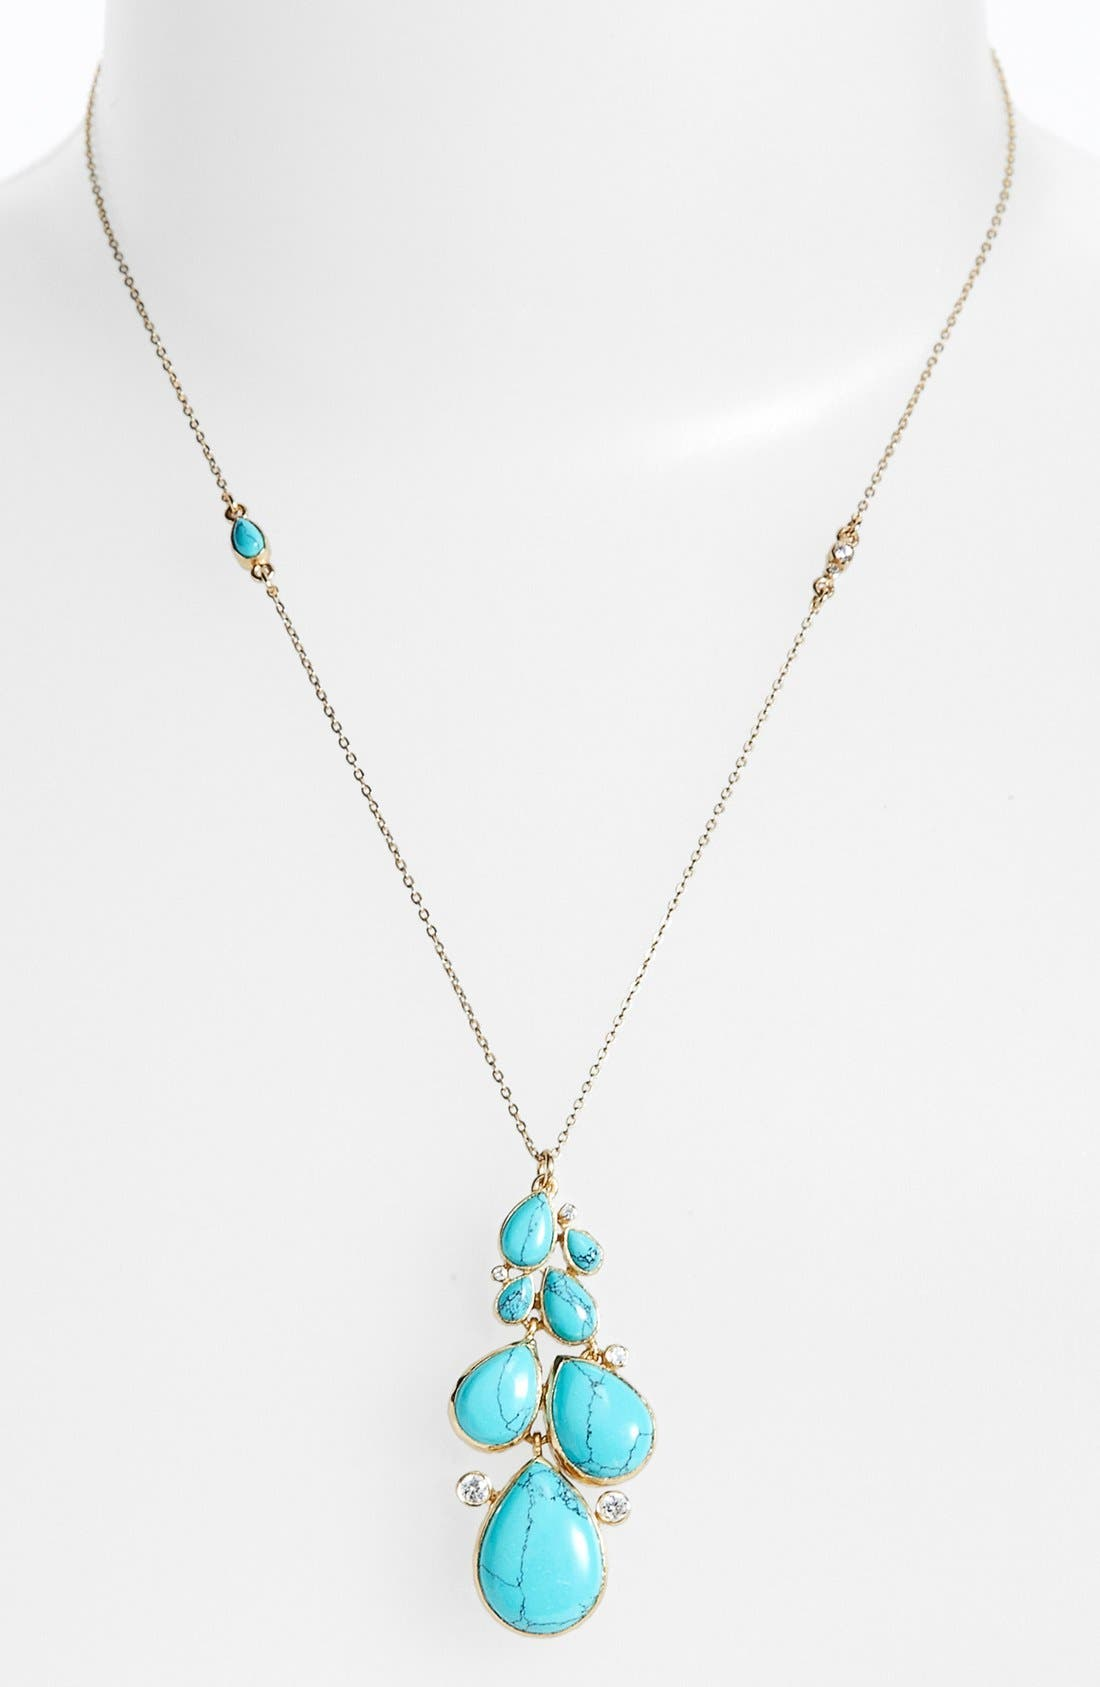 Alternate Image 1 Selected - Melinda Maria 'Regan' Pendant Necklace (Nordstrom Exclusive)